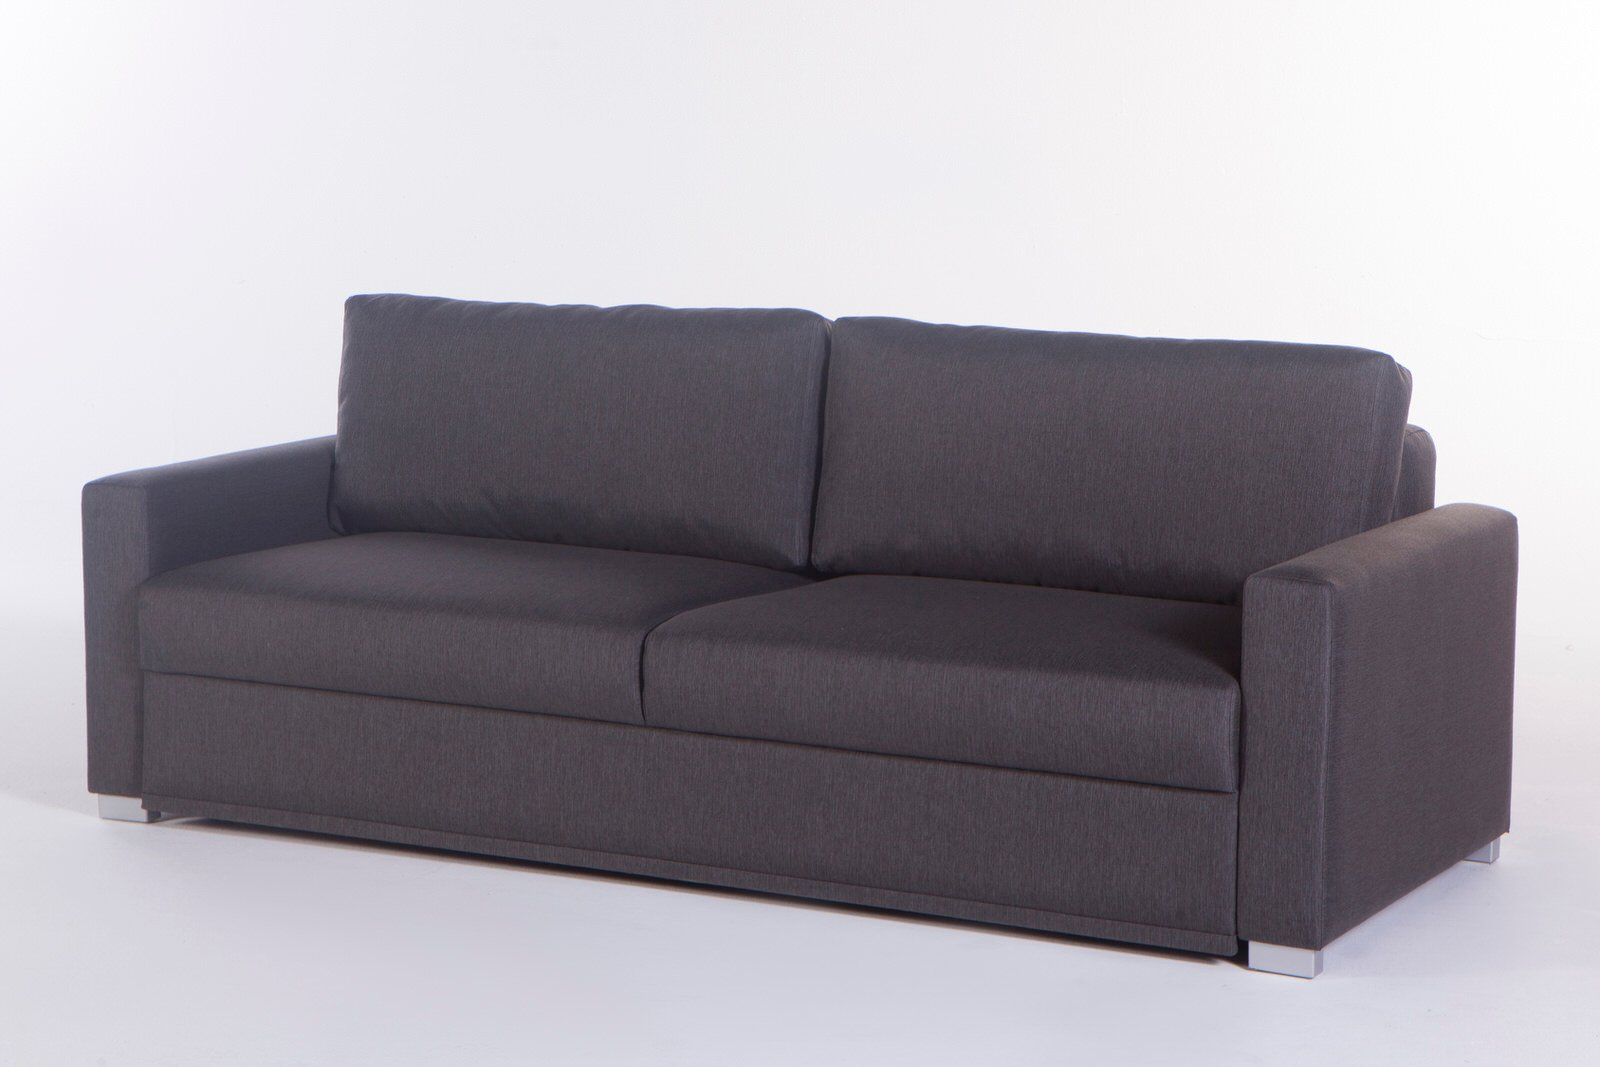 Felix Diego Dark Gray Convertible Sofa Bed By Sunset